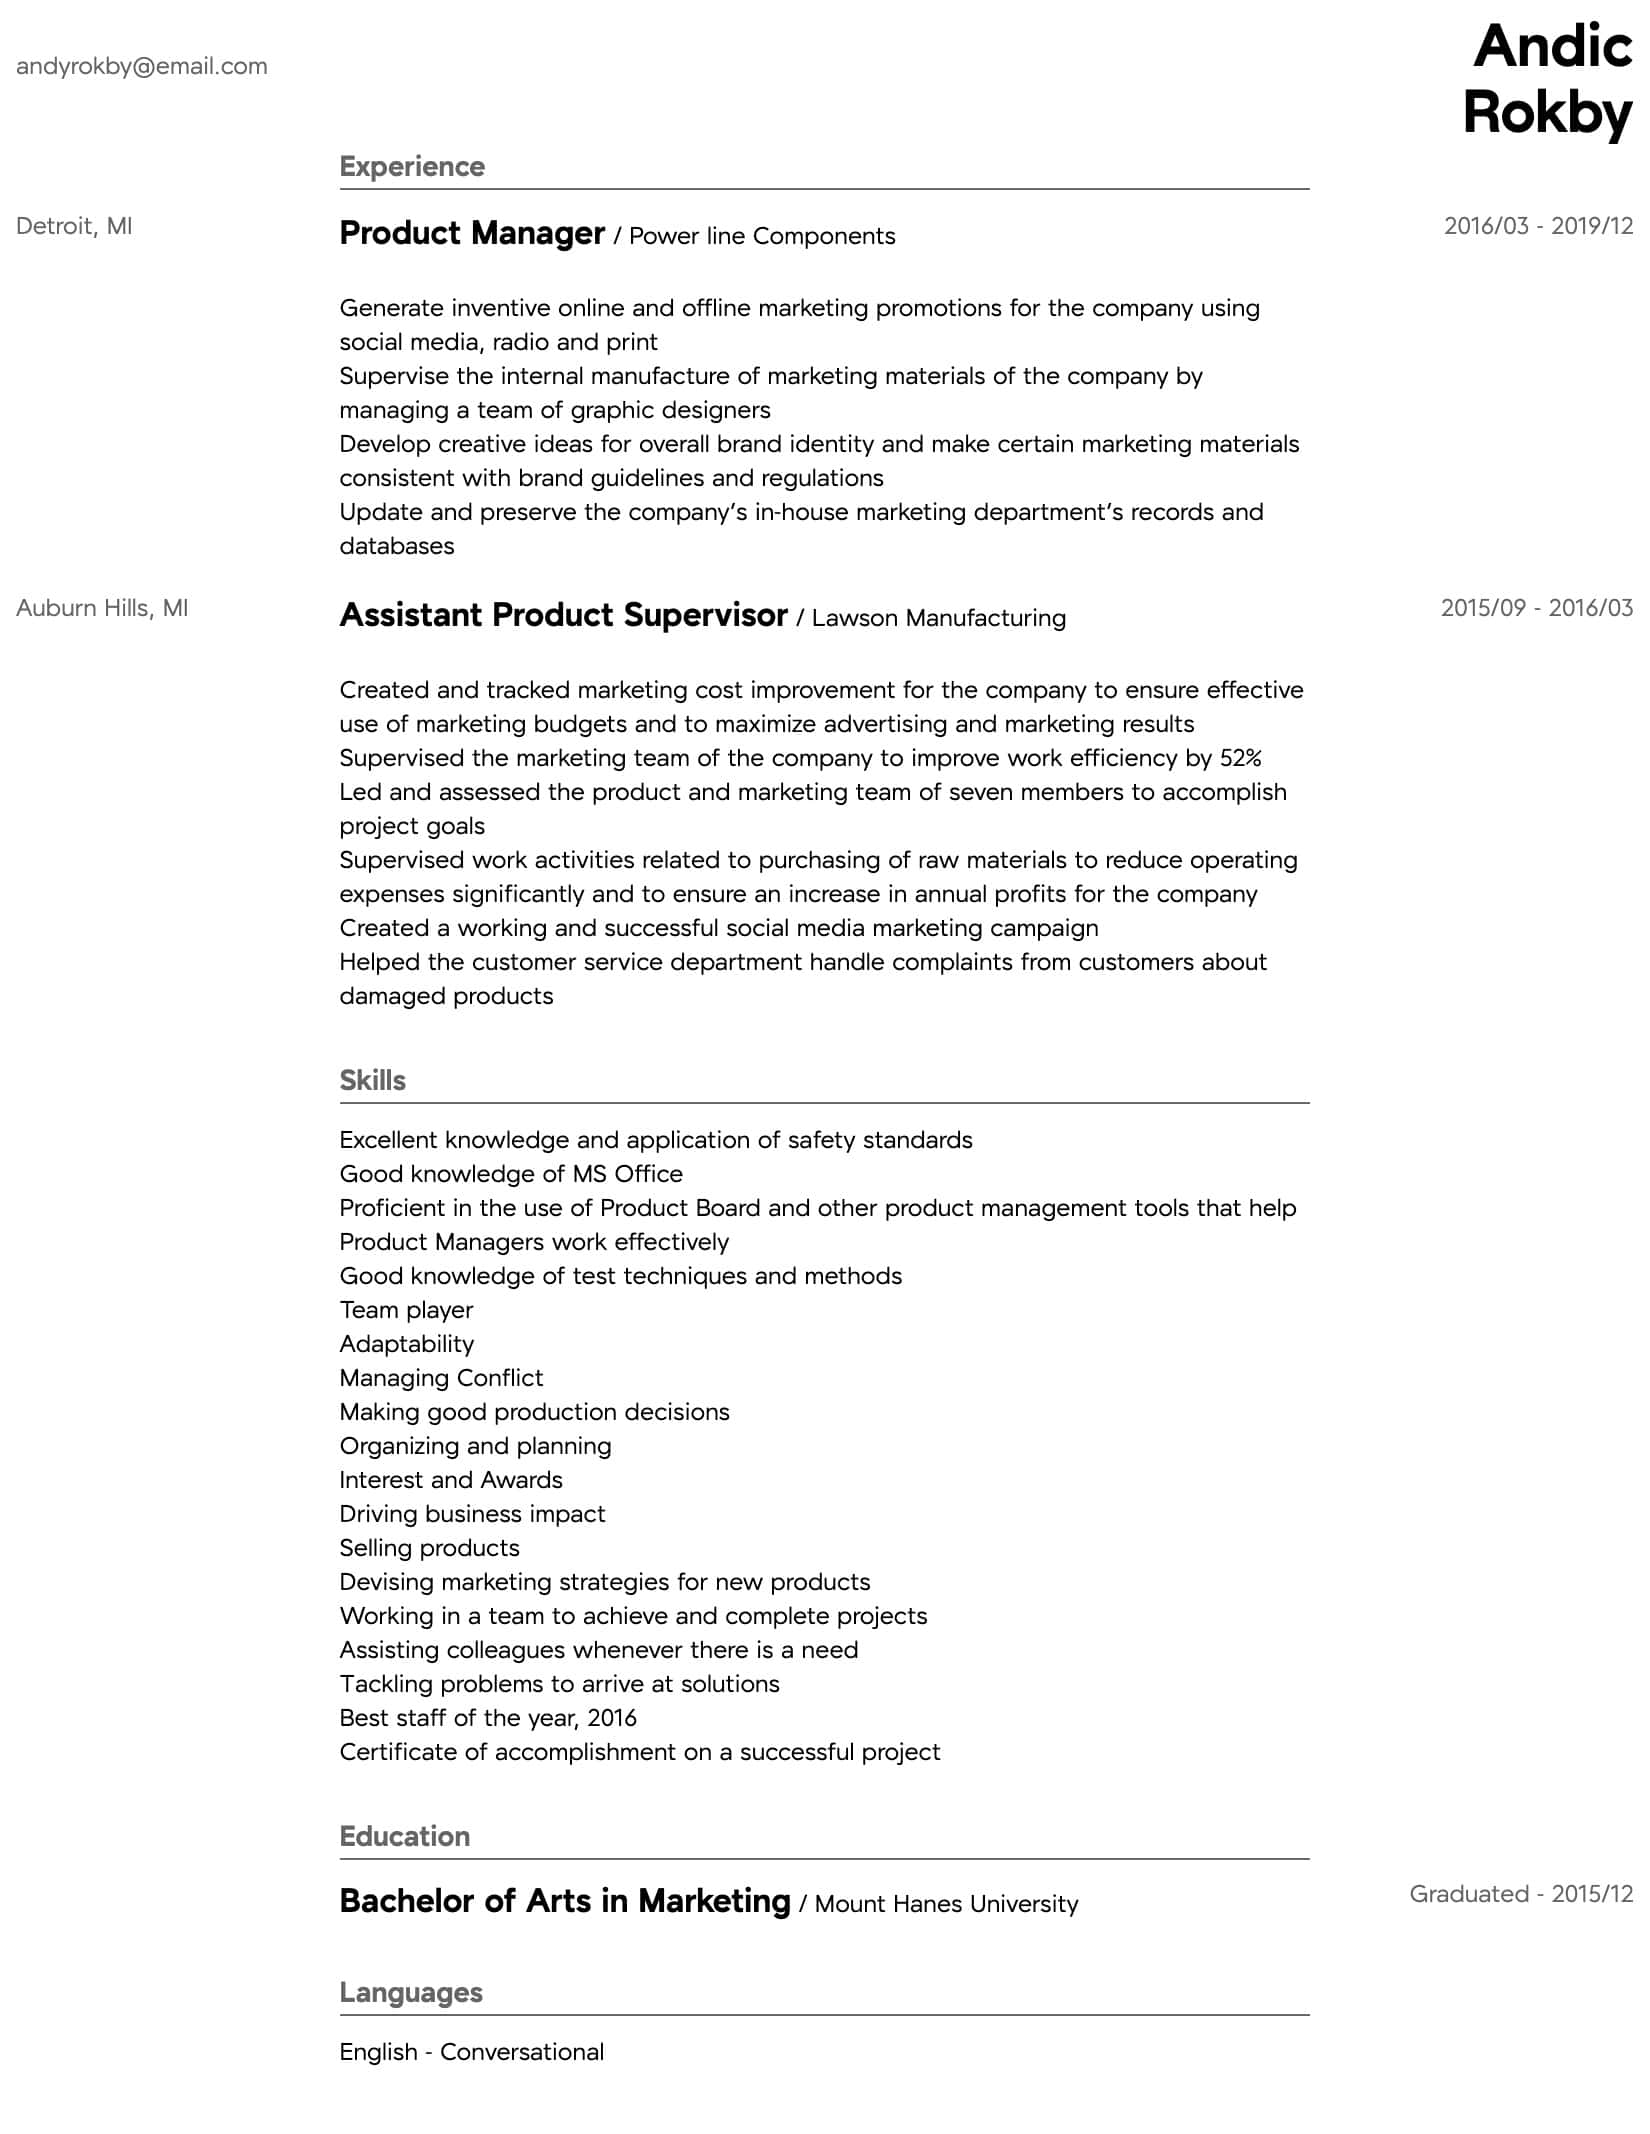 product manager resume samples all experience levels template intermediate adobe the Resume Product Manager Resume Template